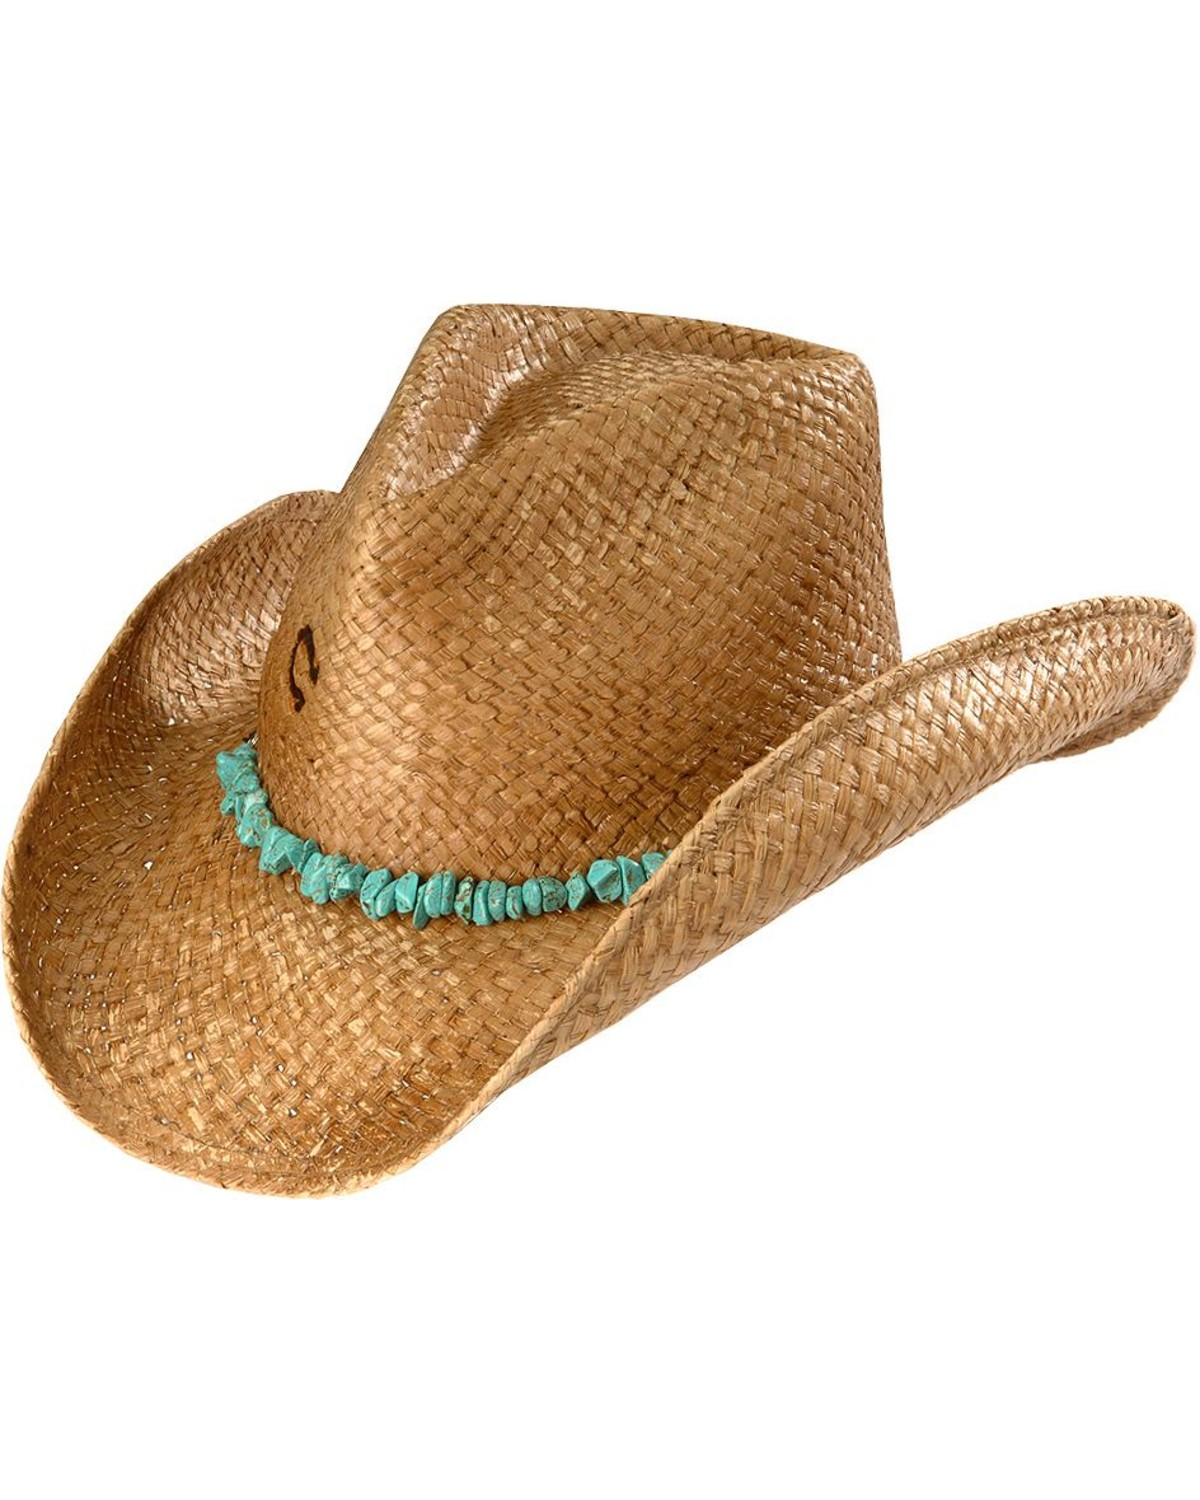 Straw Cowboy Hats For Sale 4d993bc0e46